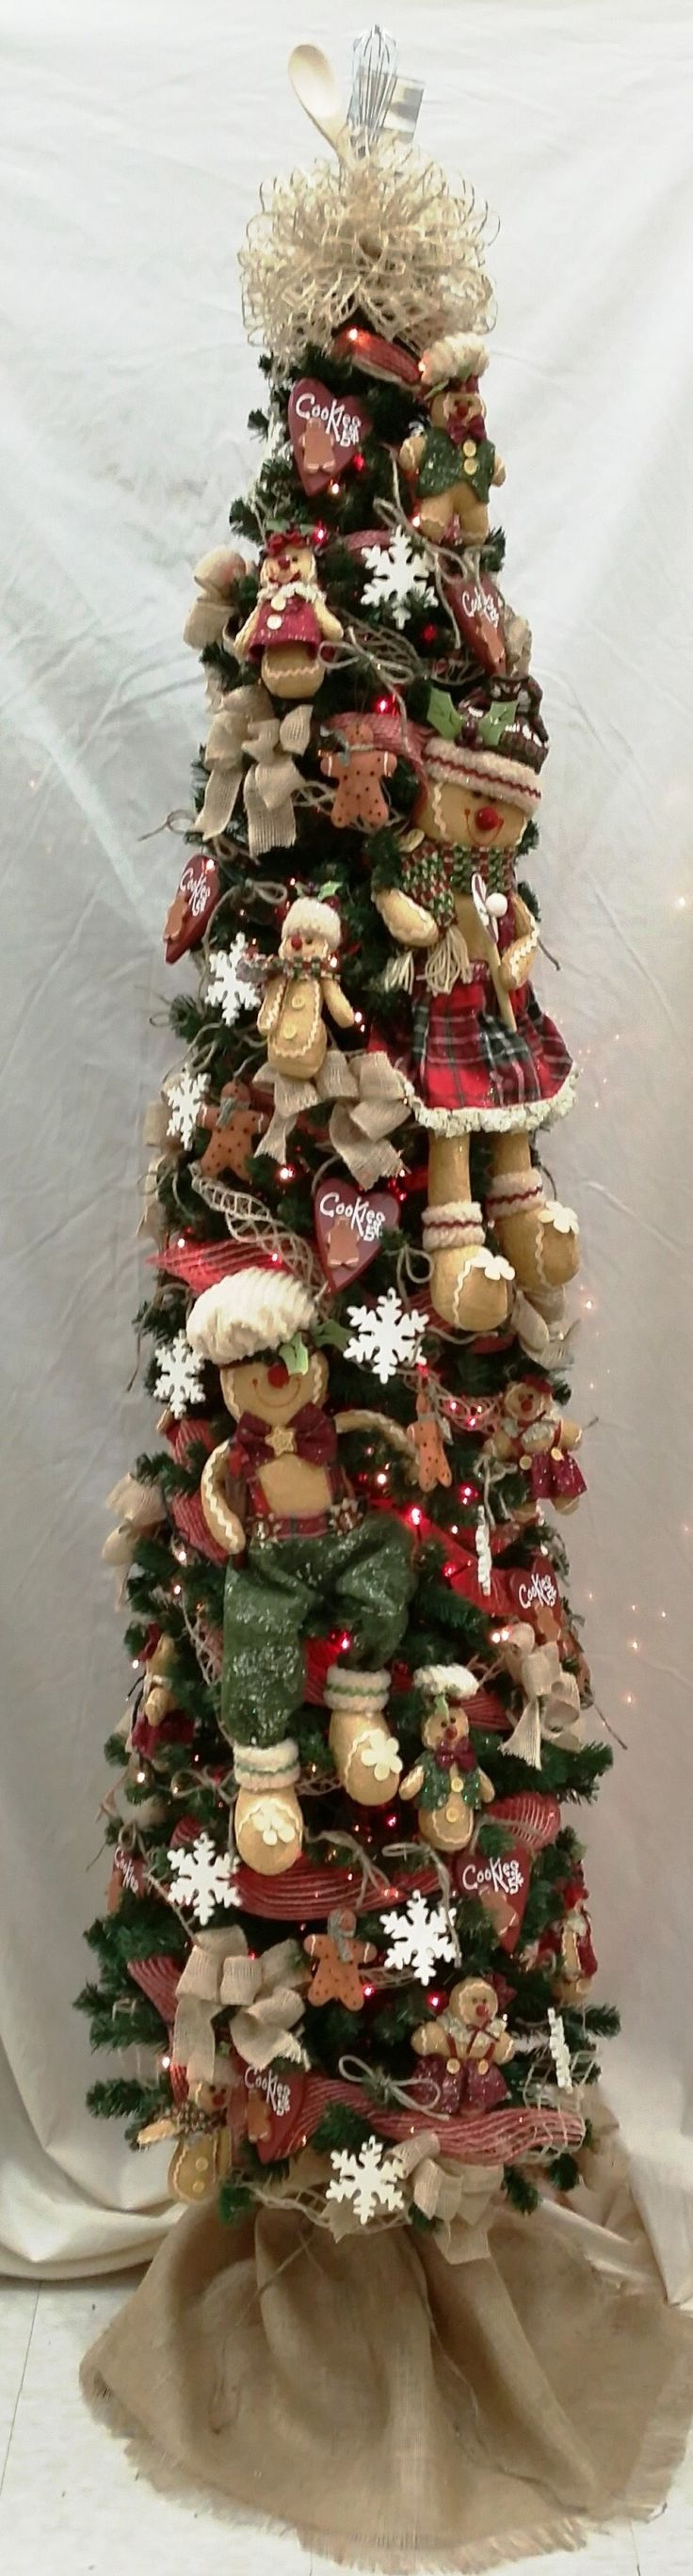 2014 Primitive Gingerbread Cookie Tree! This beautiful tree showcases adorable Gingerbread men and is finished off with a kitchen utensil and burlap bow topper! #christmastrees #christmas